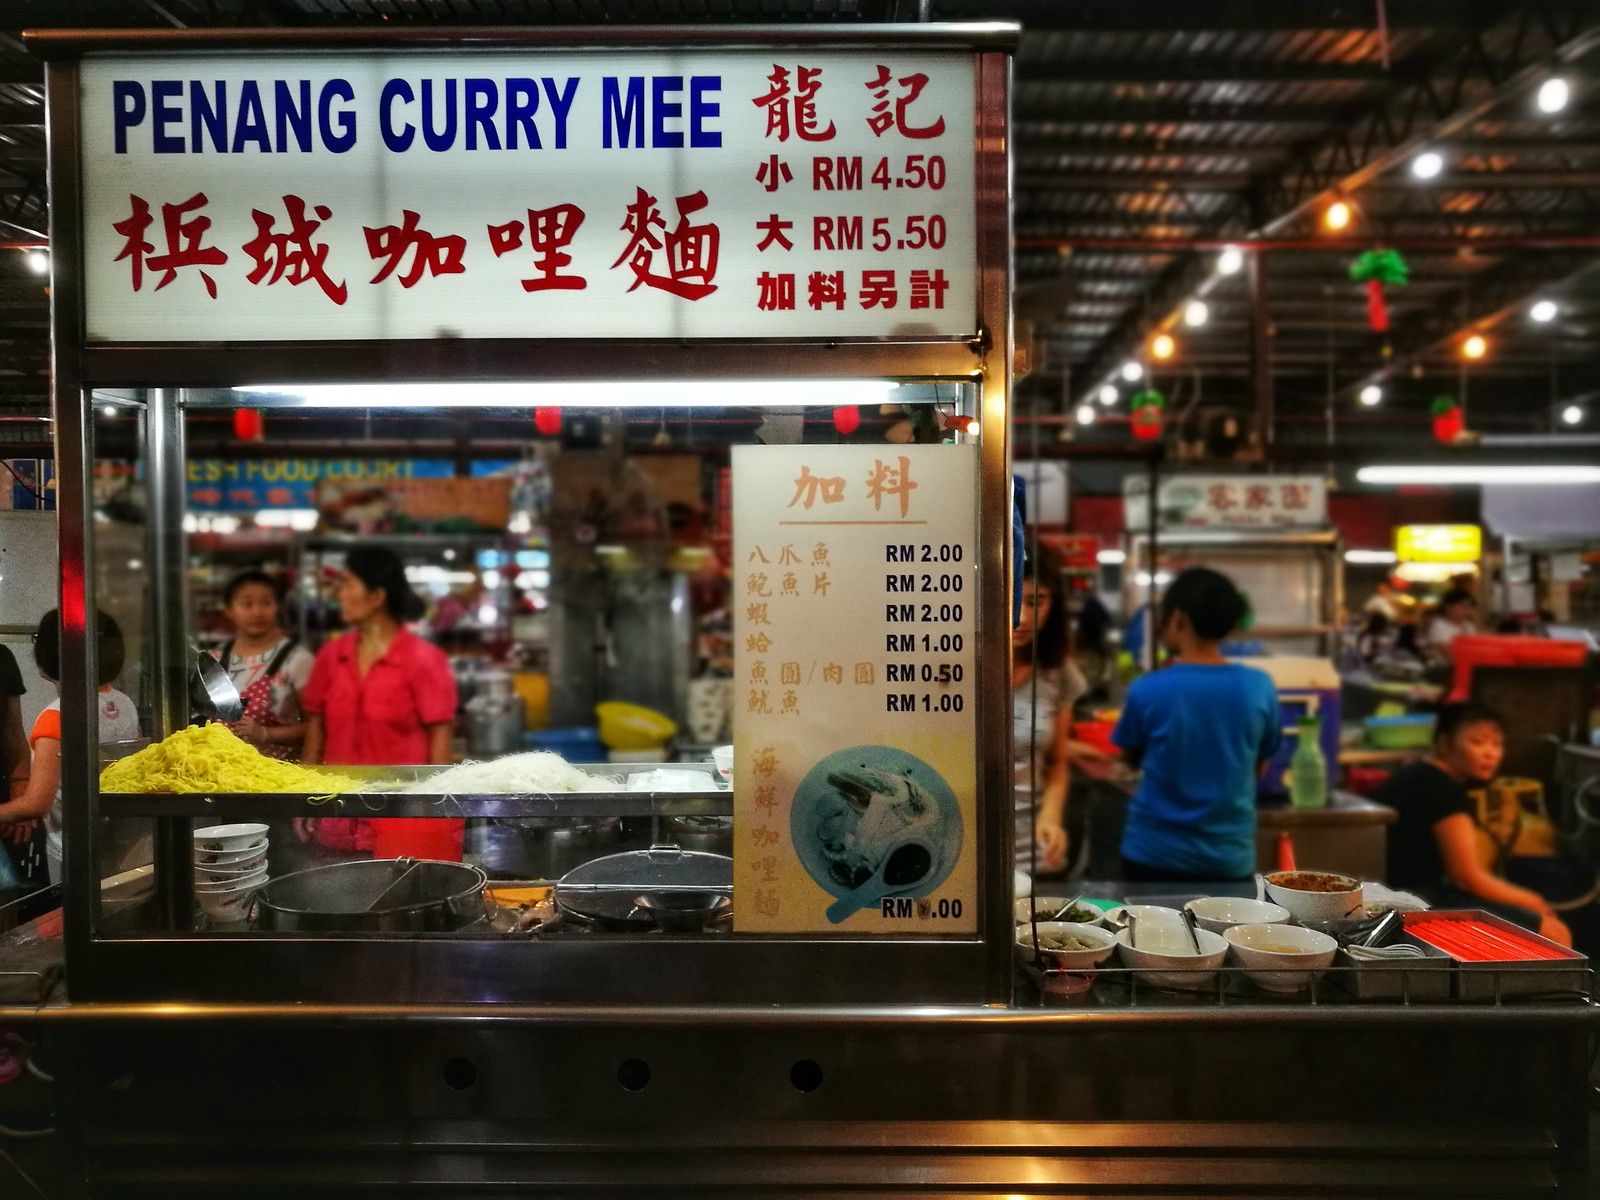 Long Kee Penang Curry Mee